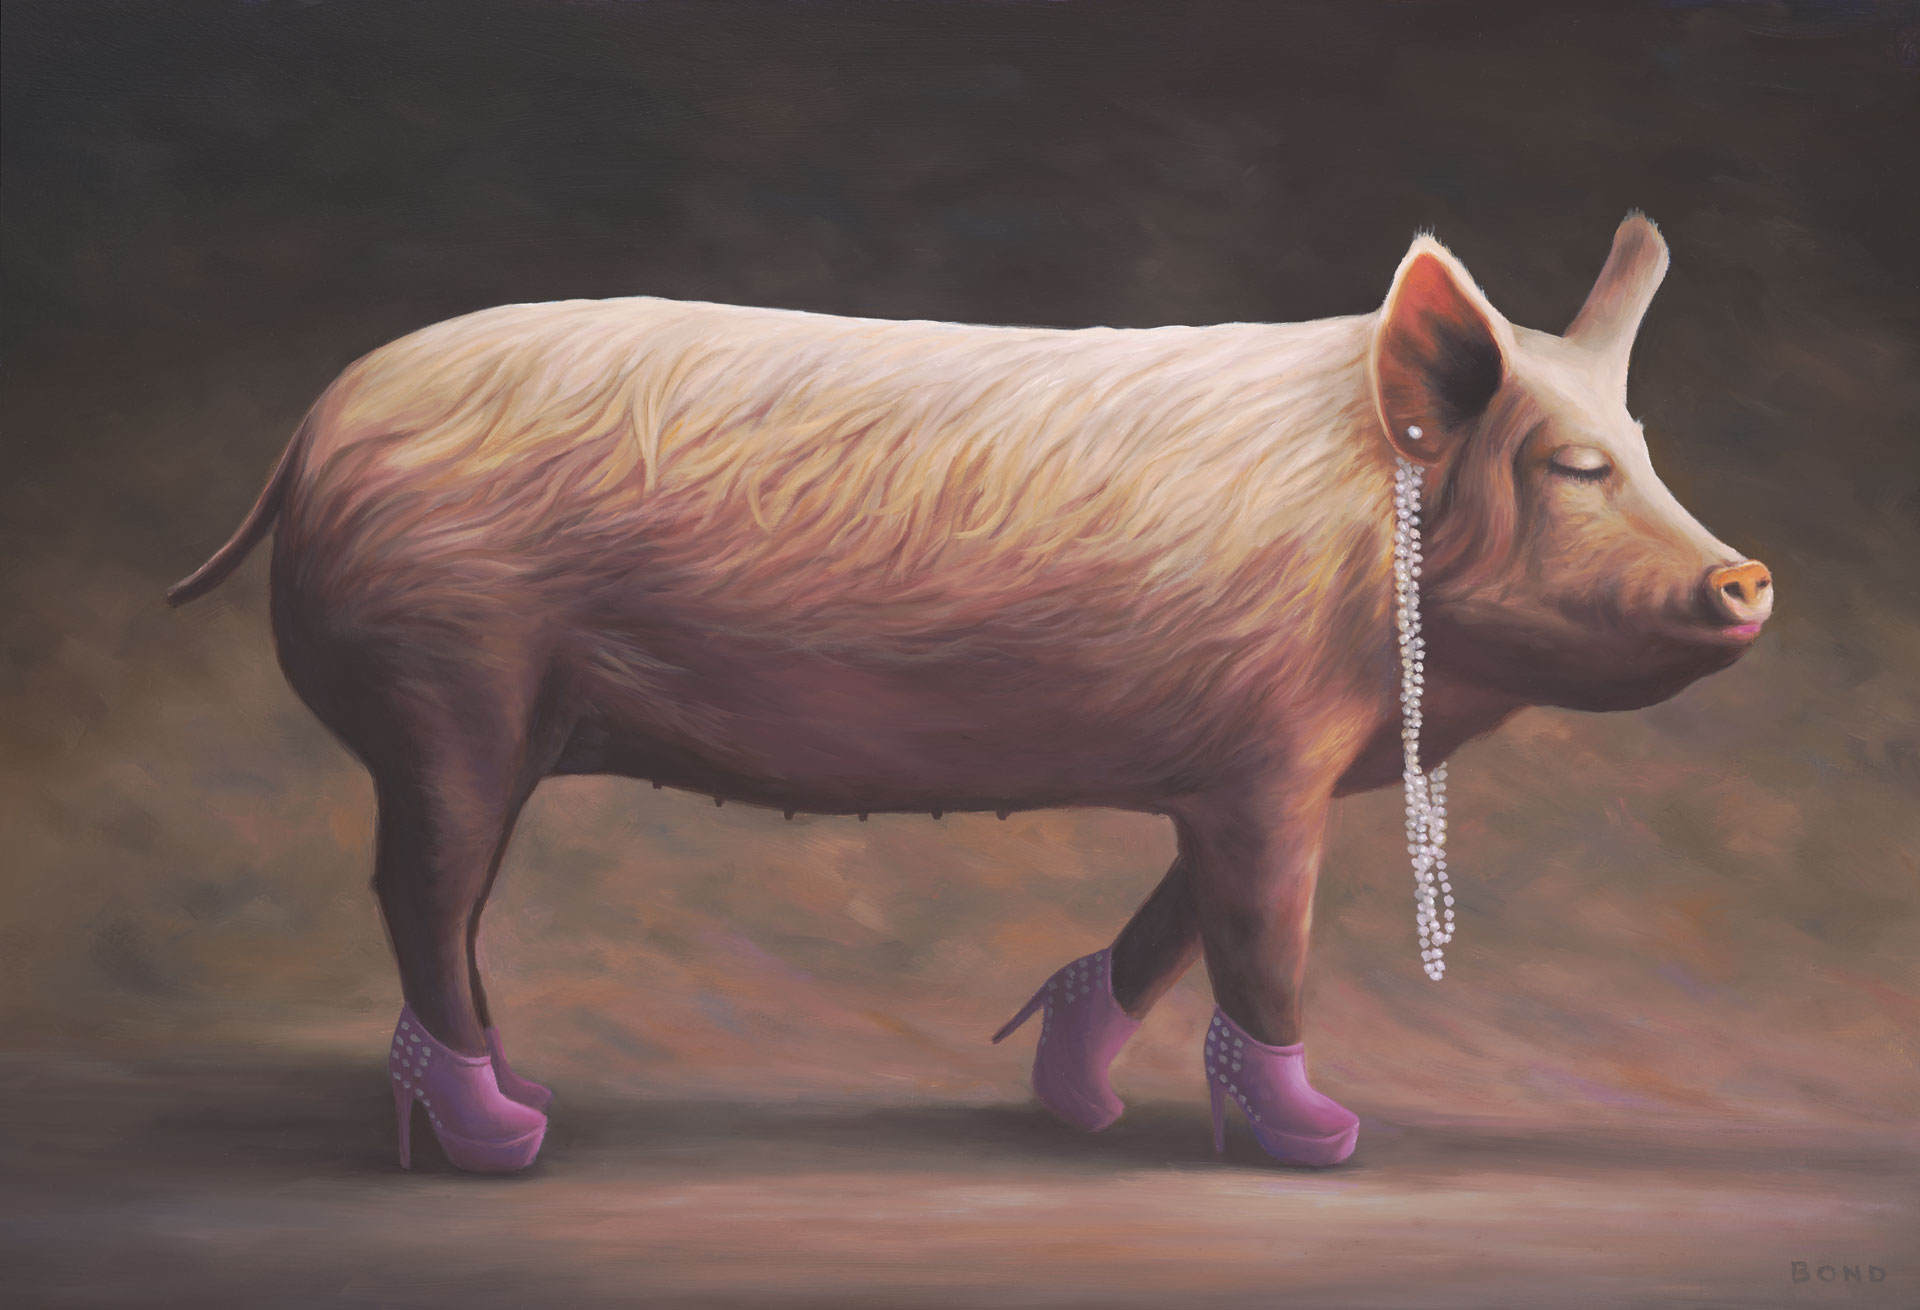 Piglet's First Beauty Pageant, painting of a pink piglet wearing pink high heels and pearl earings, painting of pig with a necklace, art with pink lipstick and a pig, lipstick on a pig,  beauty in the eye of the beholder, painting about inner beauty pageant, art meaning lovely beautiful delightful, art wtih high heeled shoes, art with pearl necklace, art meaning grace, soulful uplifting inspirational art, soul stirring illusion art, romantic art,  surrealism, surreal art, dreamlike imagery, fanciful art, fantasy art, dreamscape visual, metaphysical art, spiritual painting, metaphysical painting, spiritual art, whimsical art, whimsy art, dream art, fantastic realism art, magic realism oil painting by Paul Bond